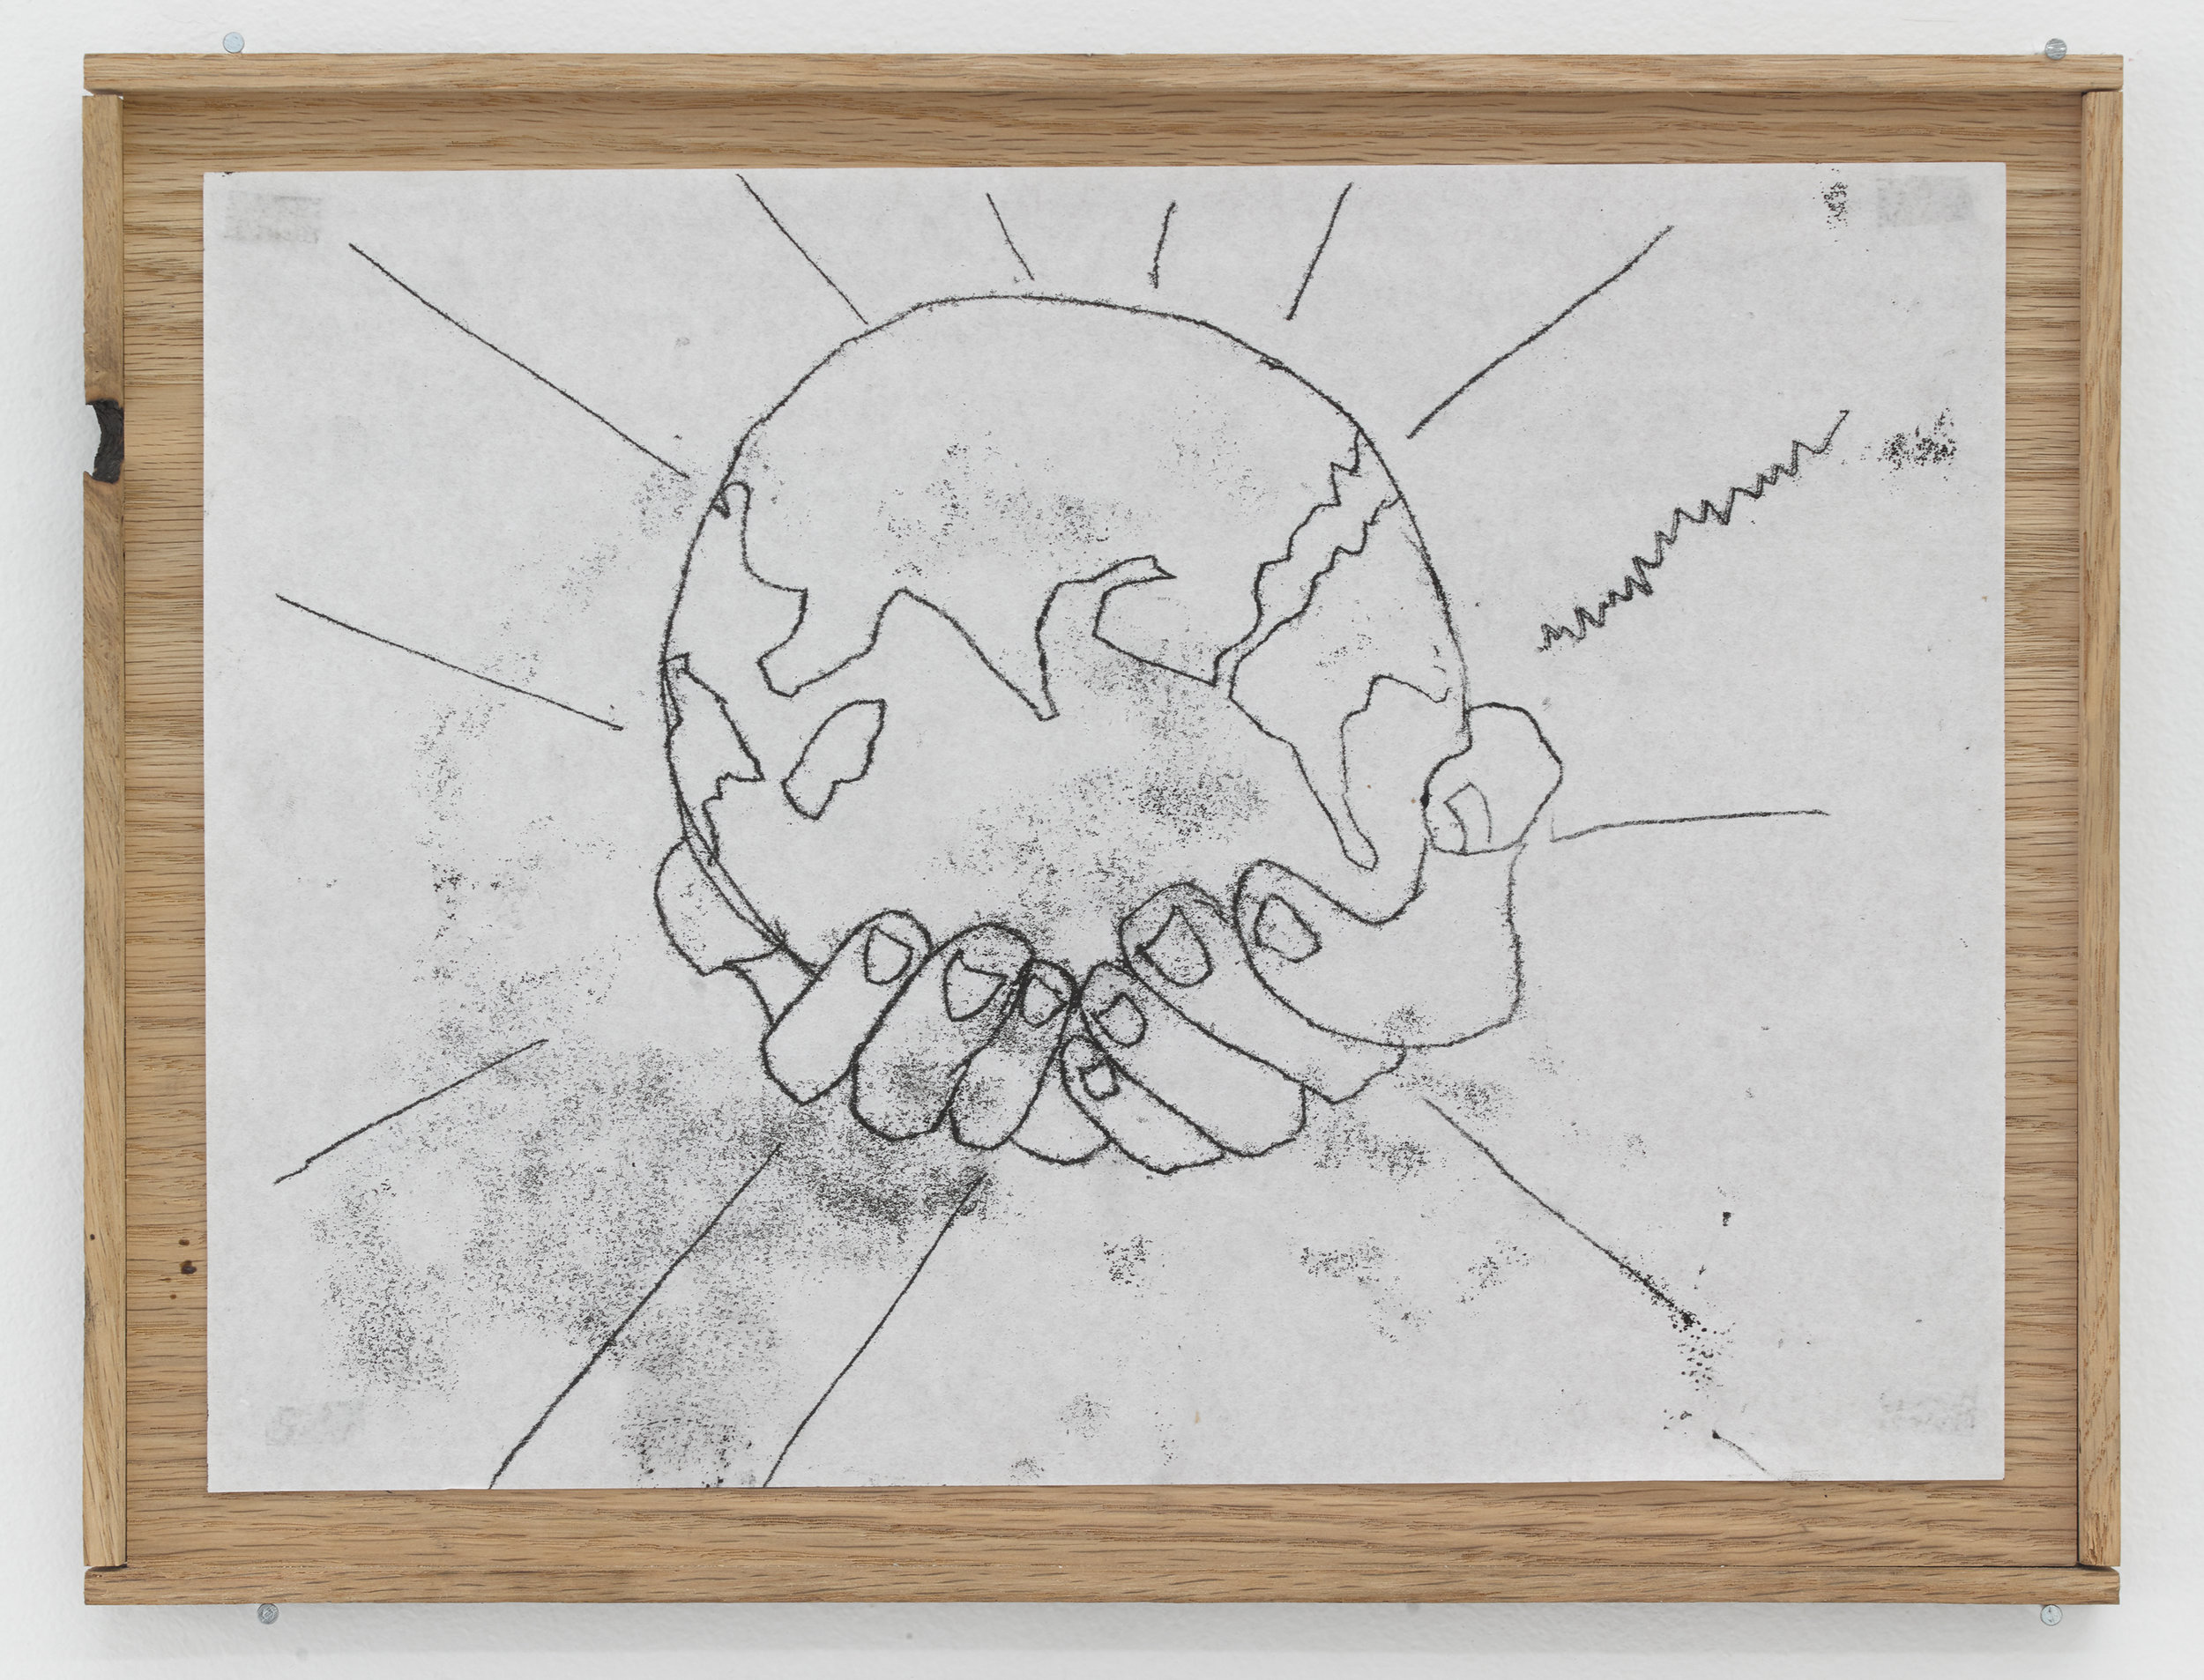 Maddy Parrasch,  Untitled (The World) , 2018, Ink monoprint in artist-made wooden frame 9 1/4 × 12 3/4 inches